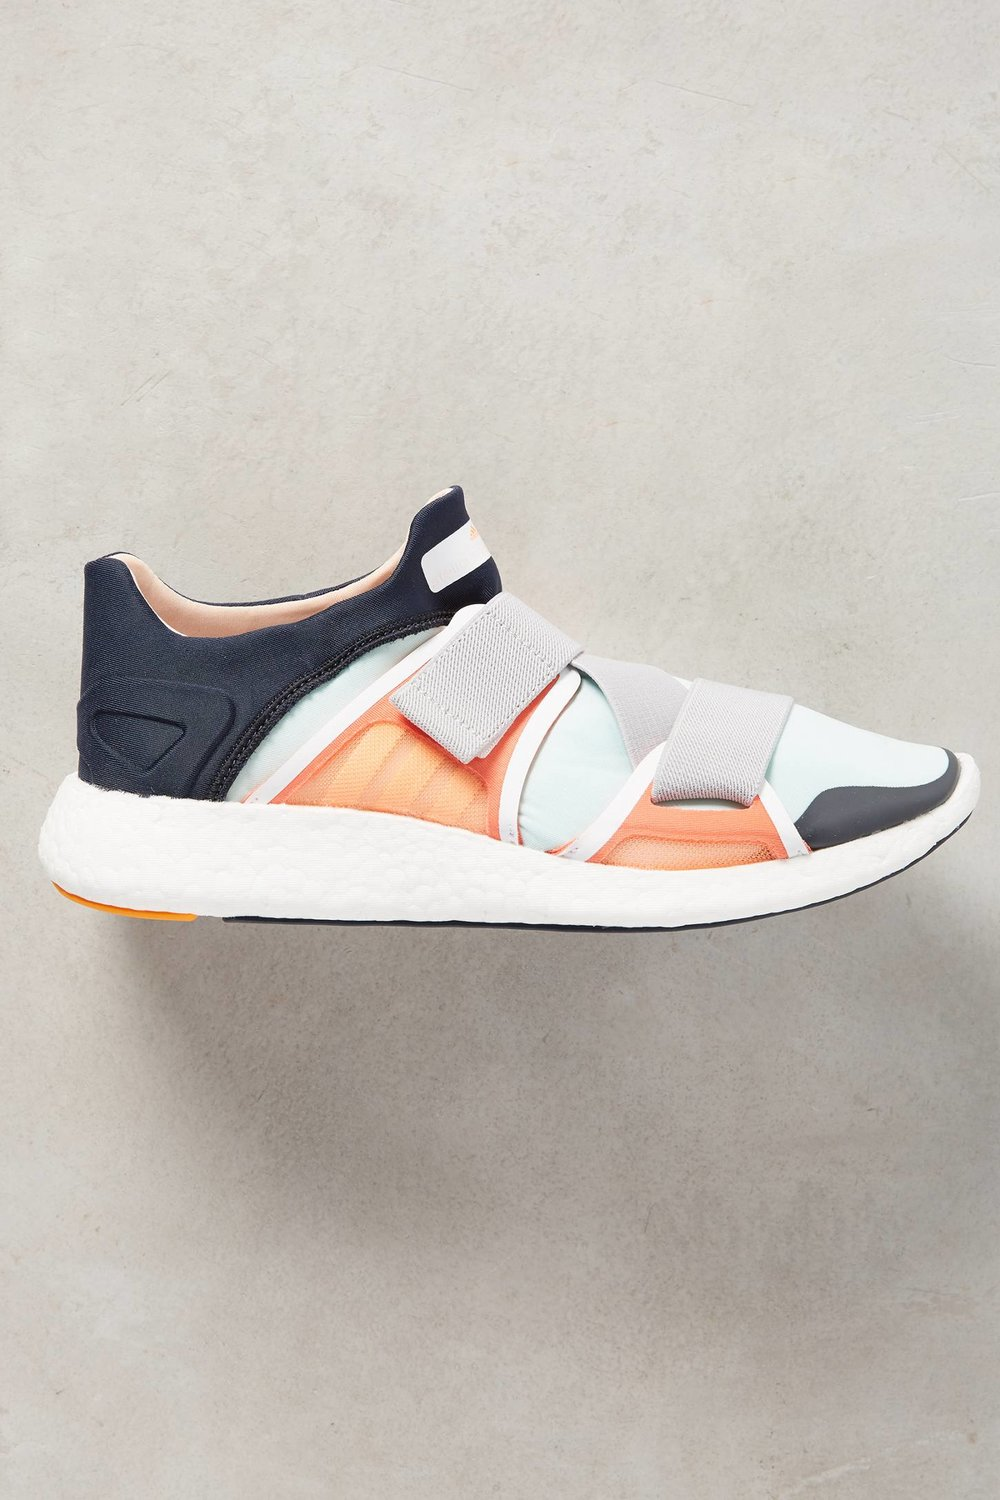 adidas-pureboost-sneakers-outstyled-2.jpeg